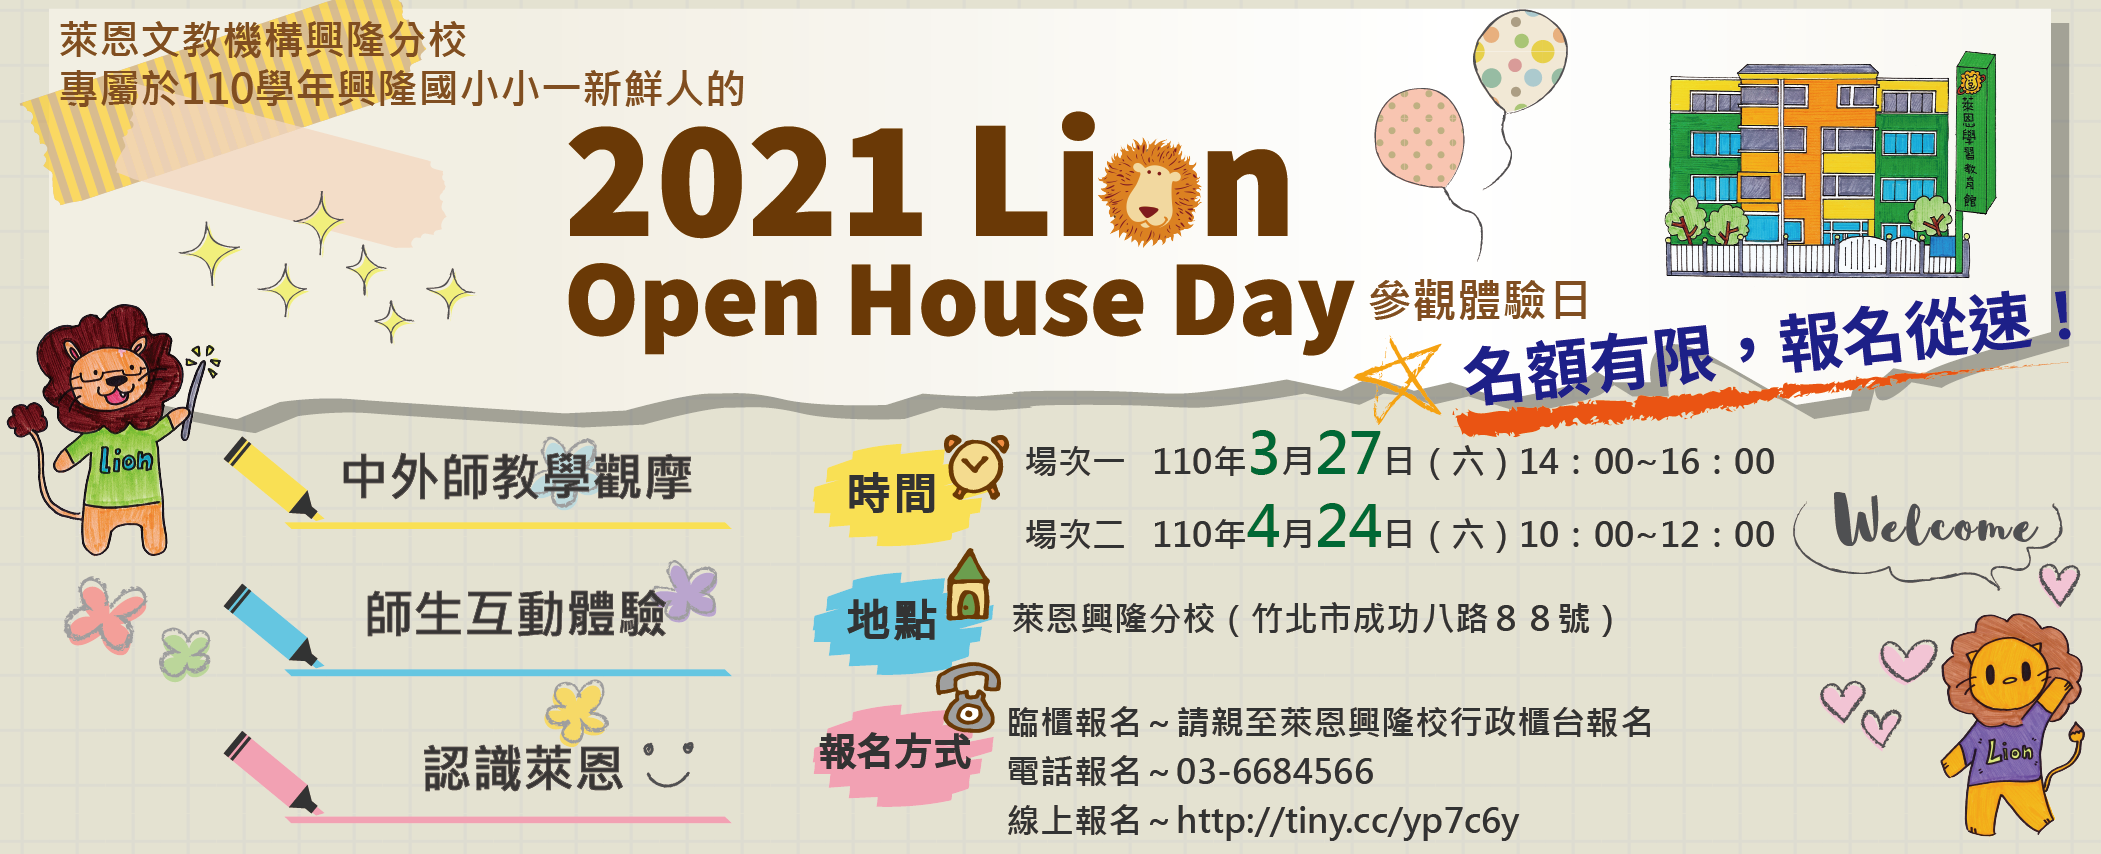 2021 Open House Day Banner